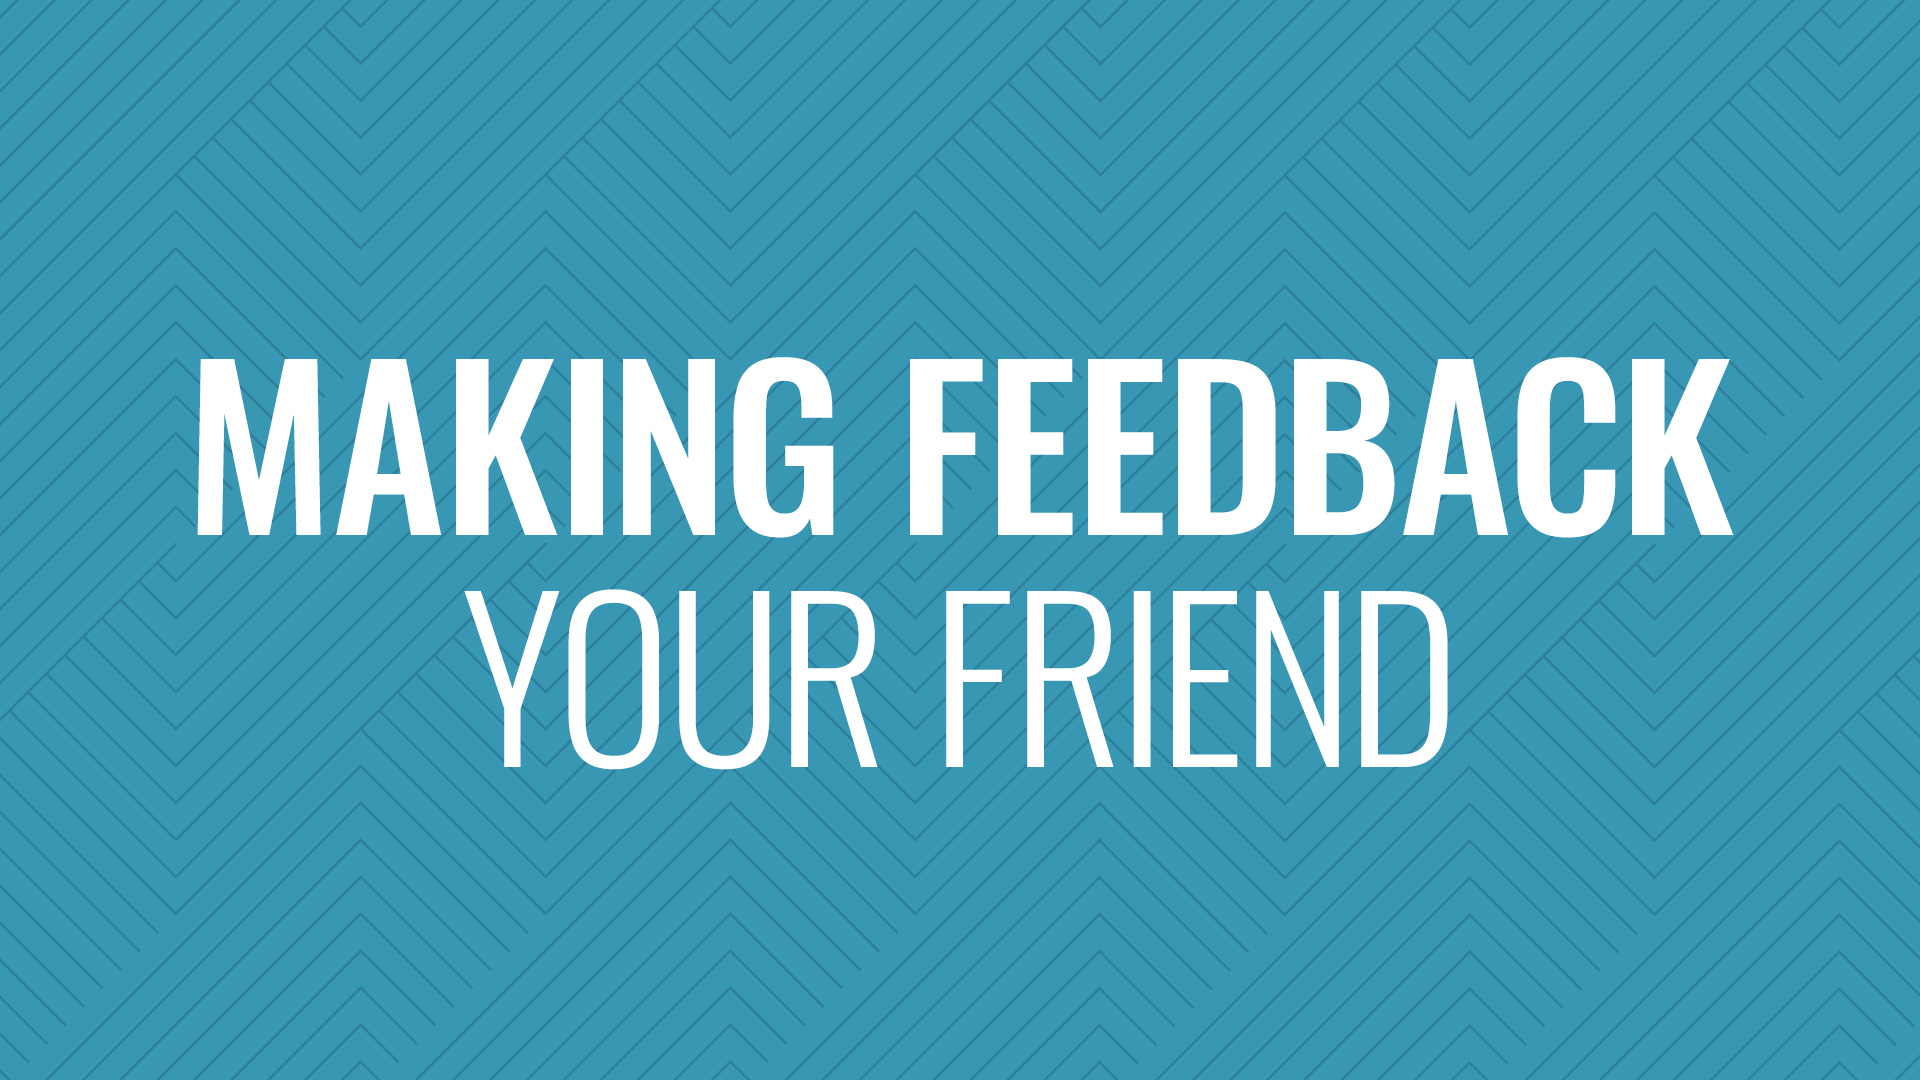 How to Make Feedback Your Friend Hero Image